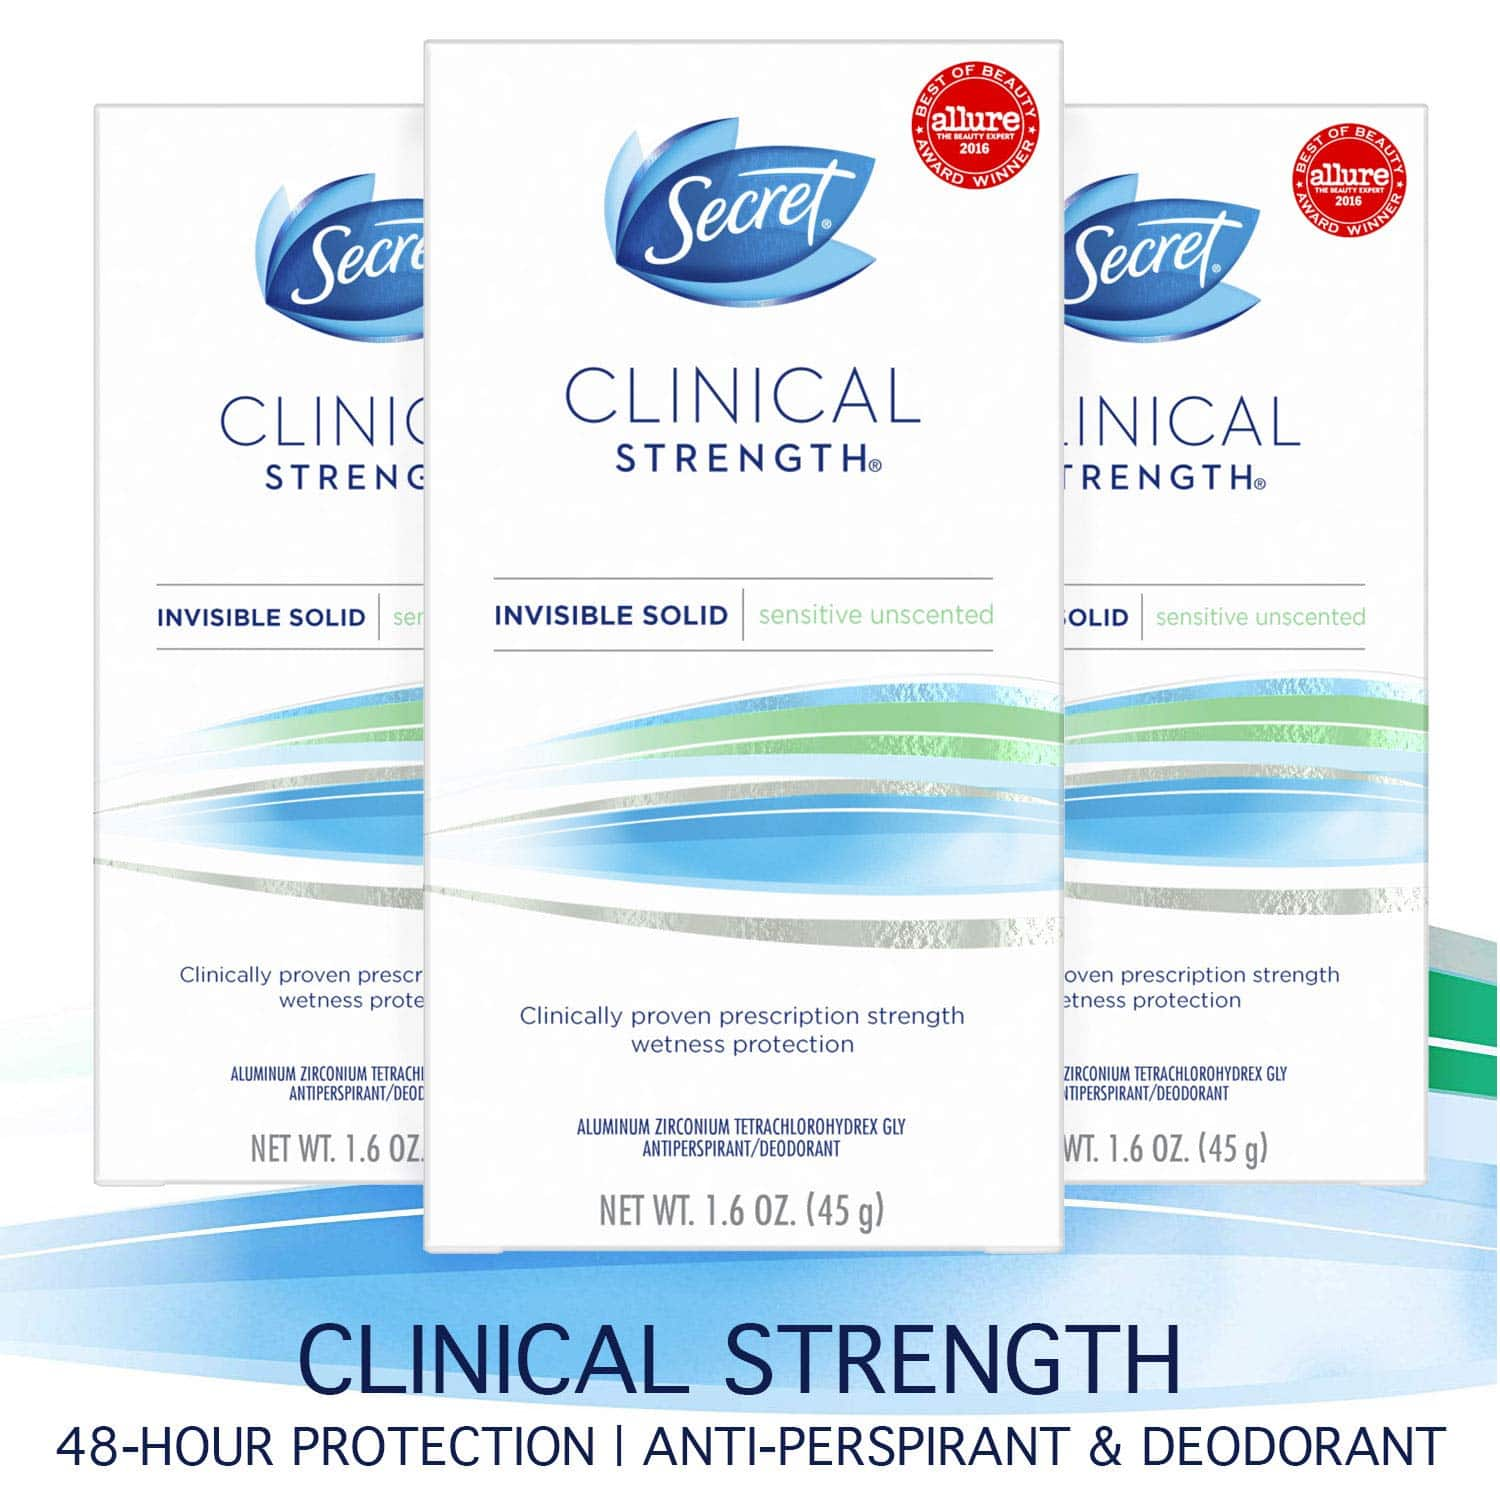 3-Pk 1.6oz Secret Clinical Strength Invisible Solid Antiperspirant Deodorant for Women (Sensitive Unscented) $14.94